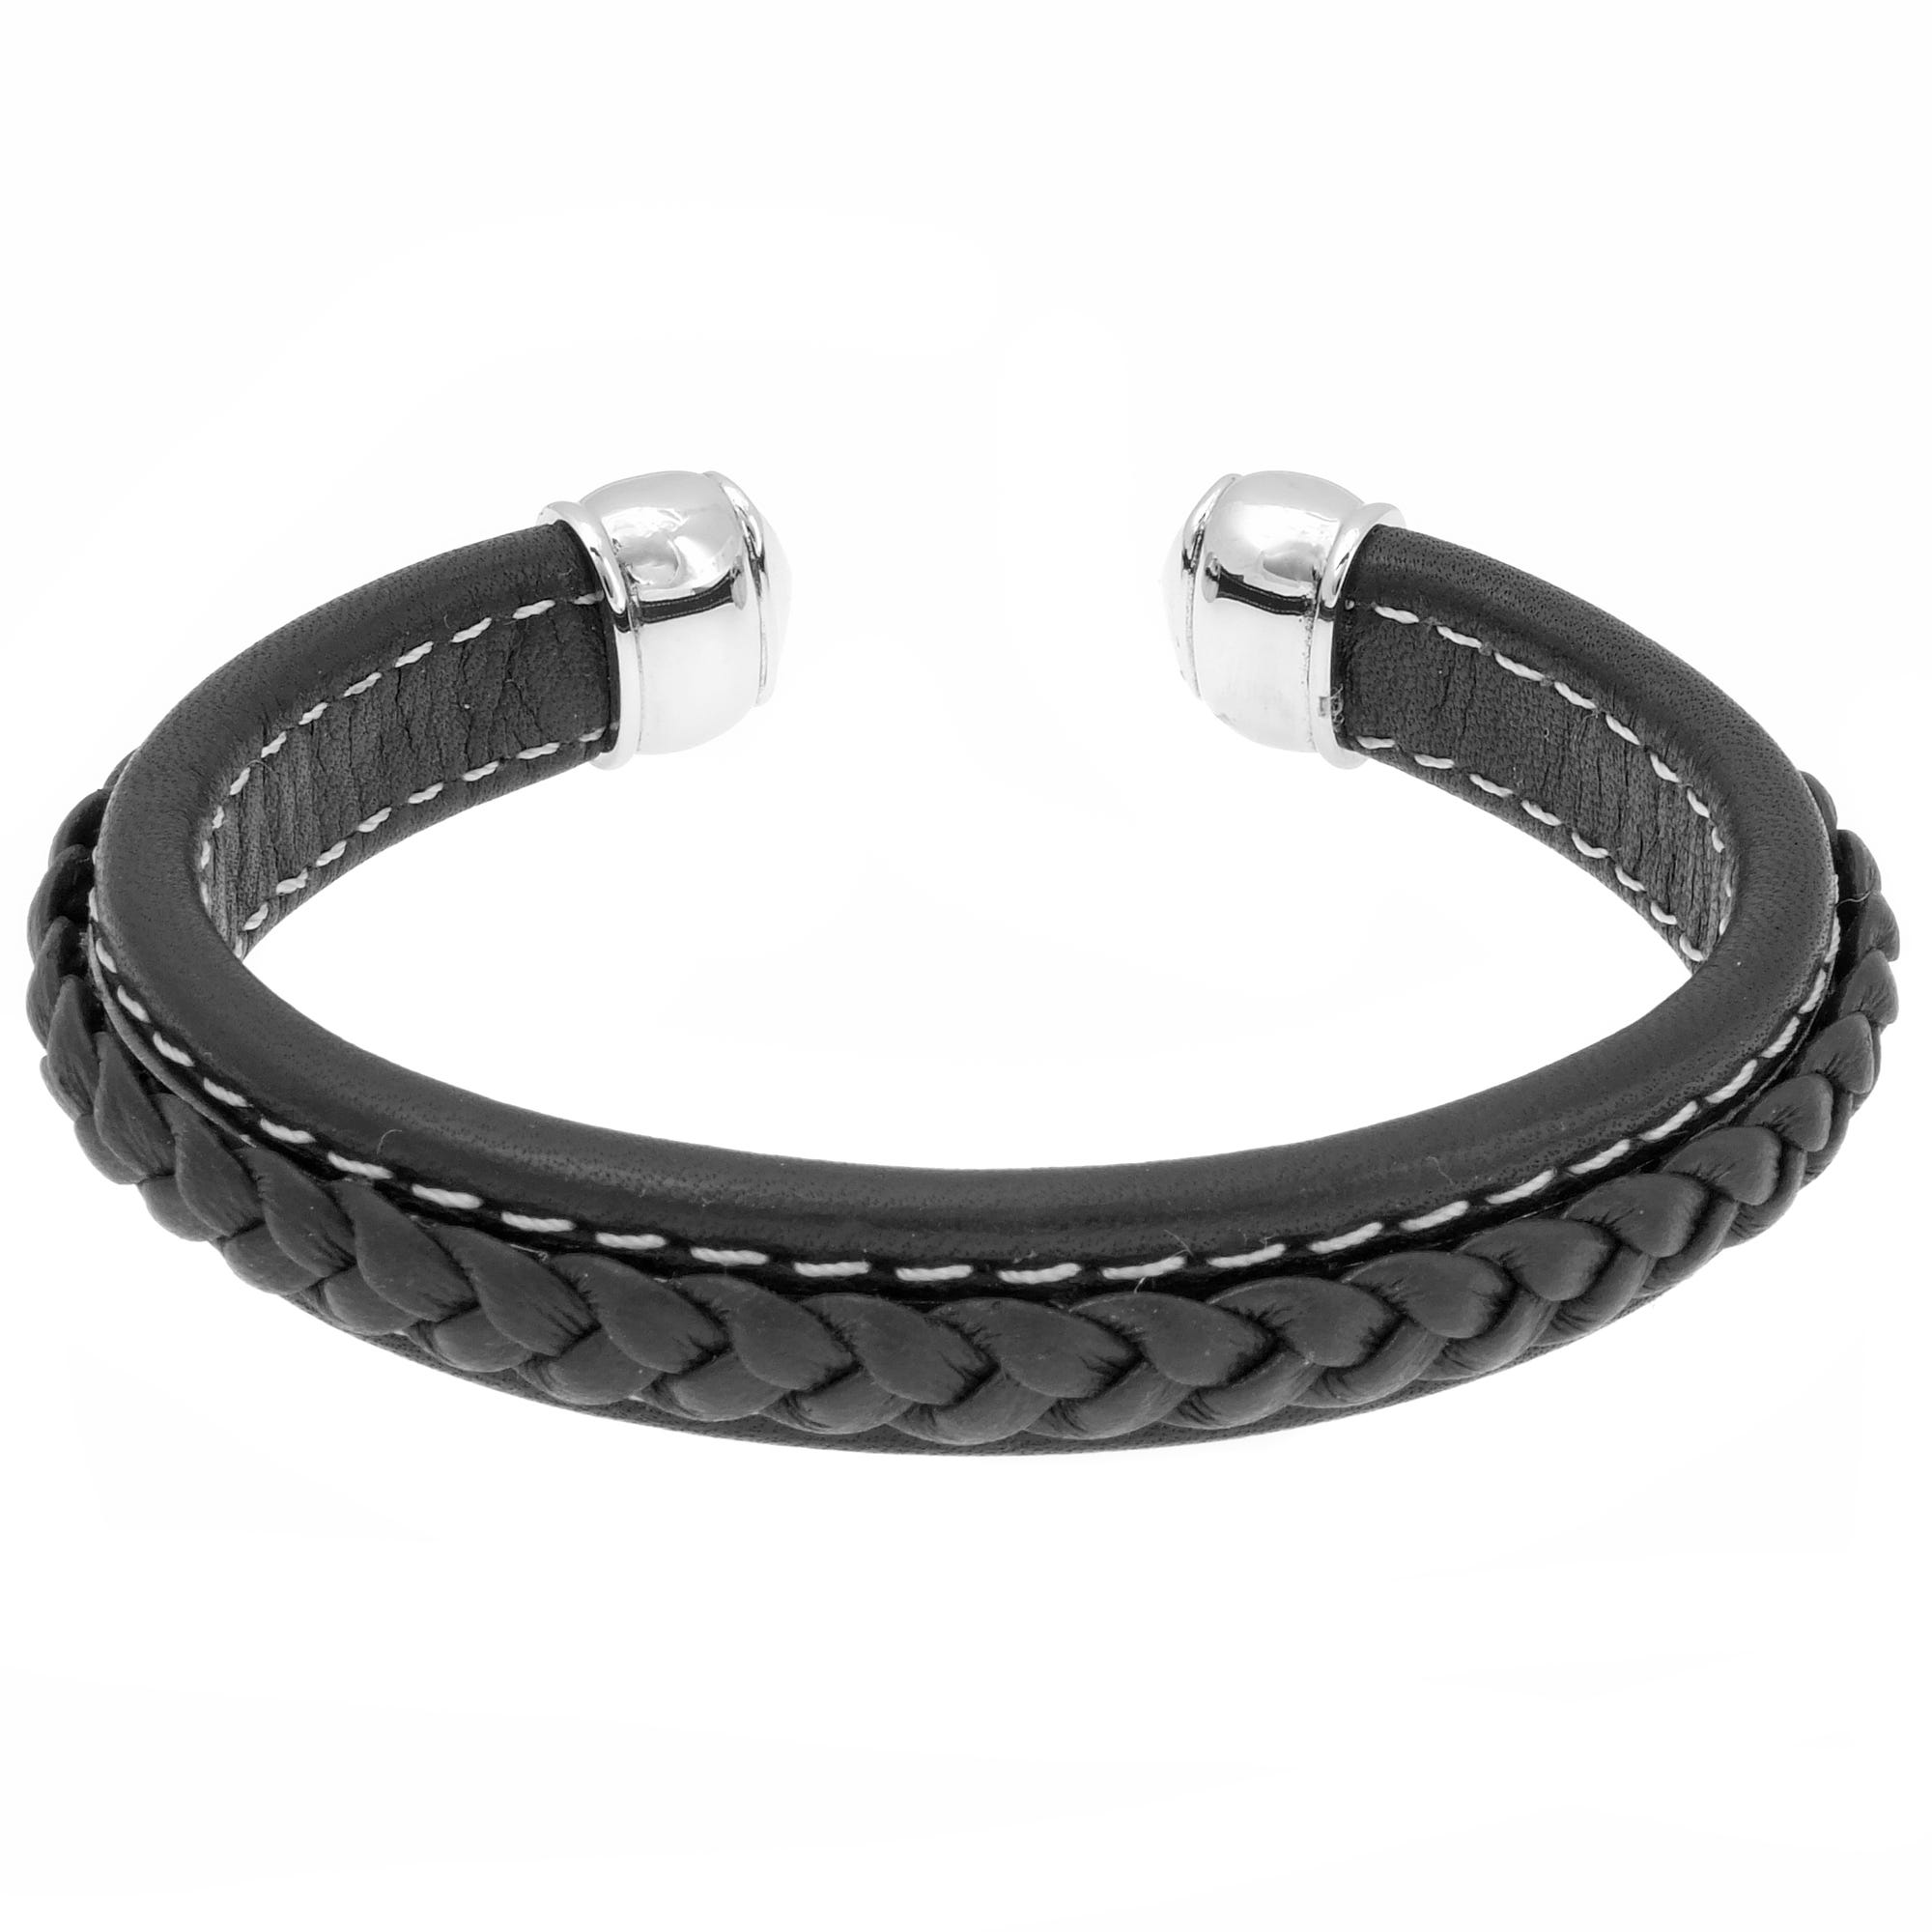 Men's Stainless Steel Black Braided Leather Cuff